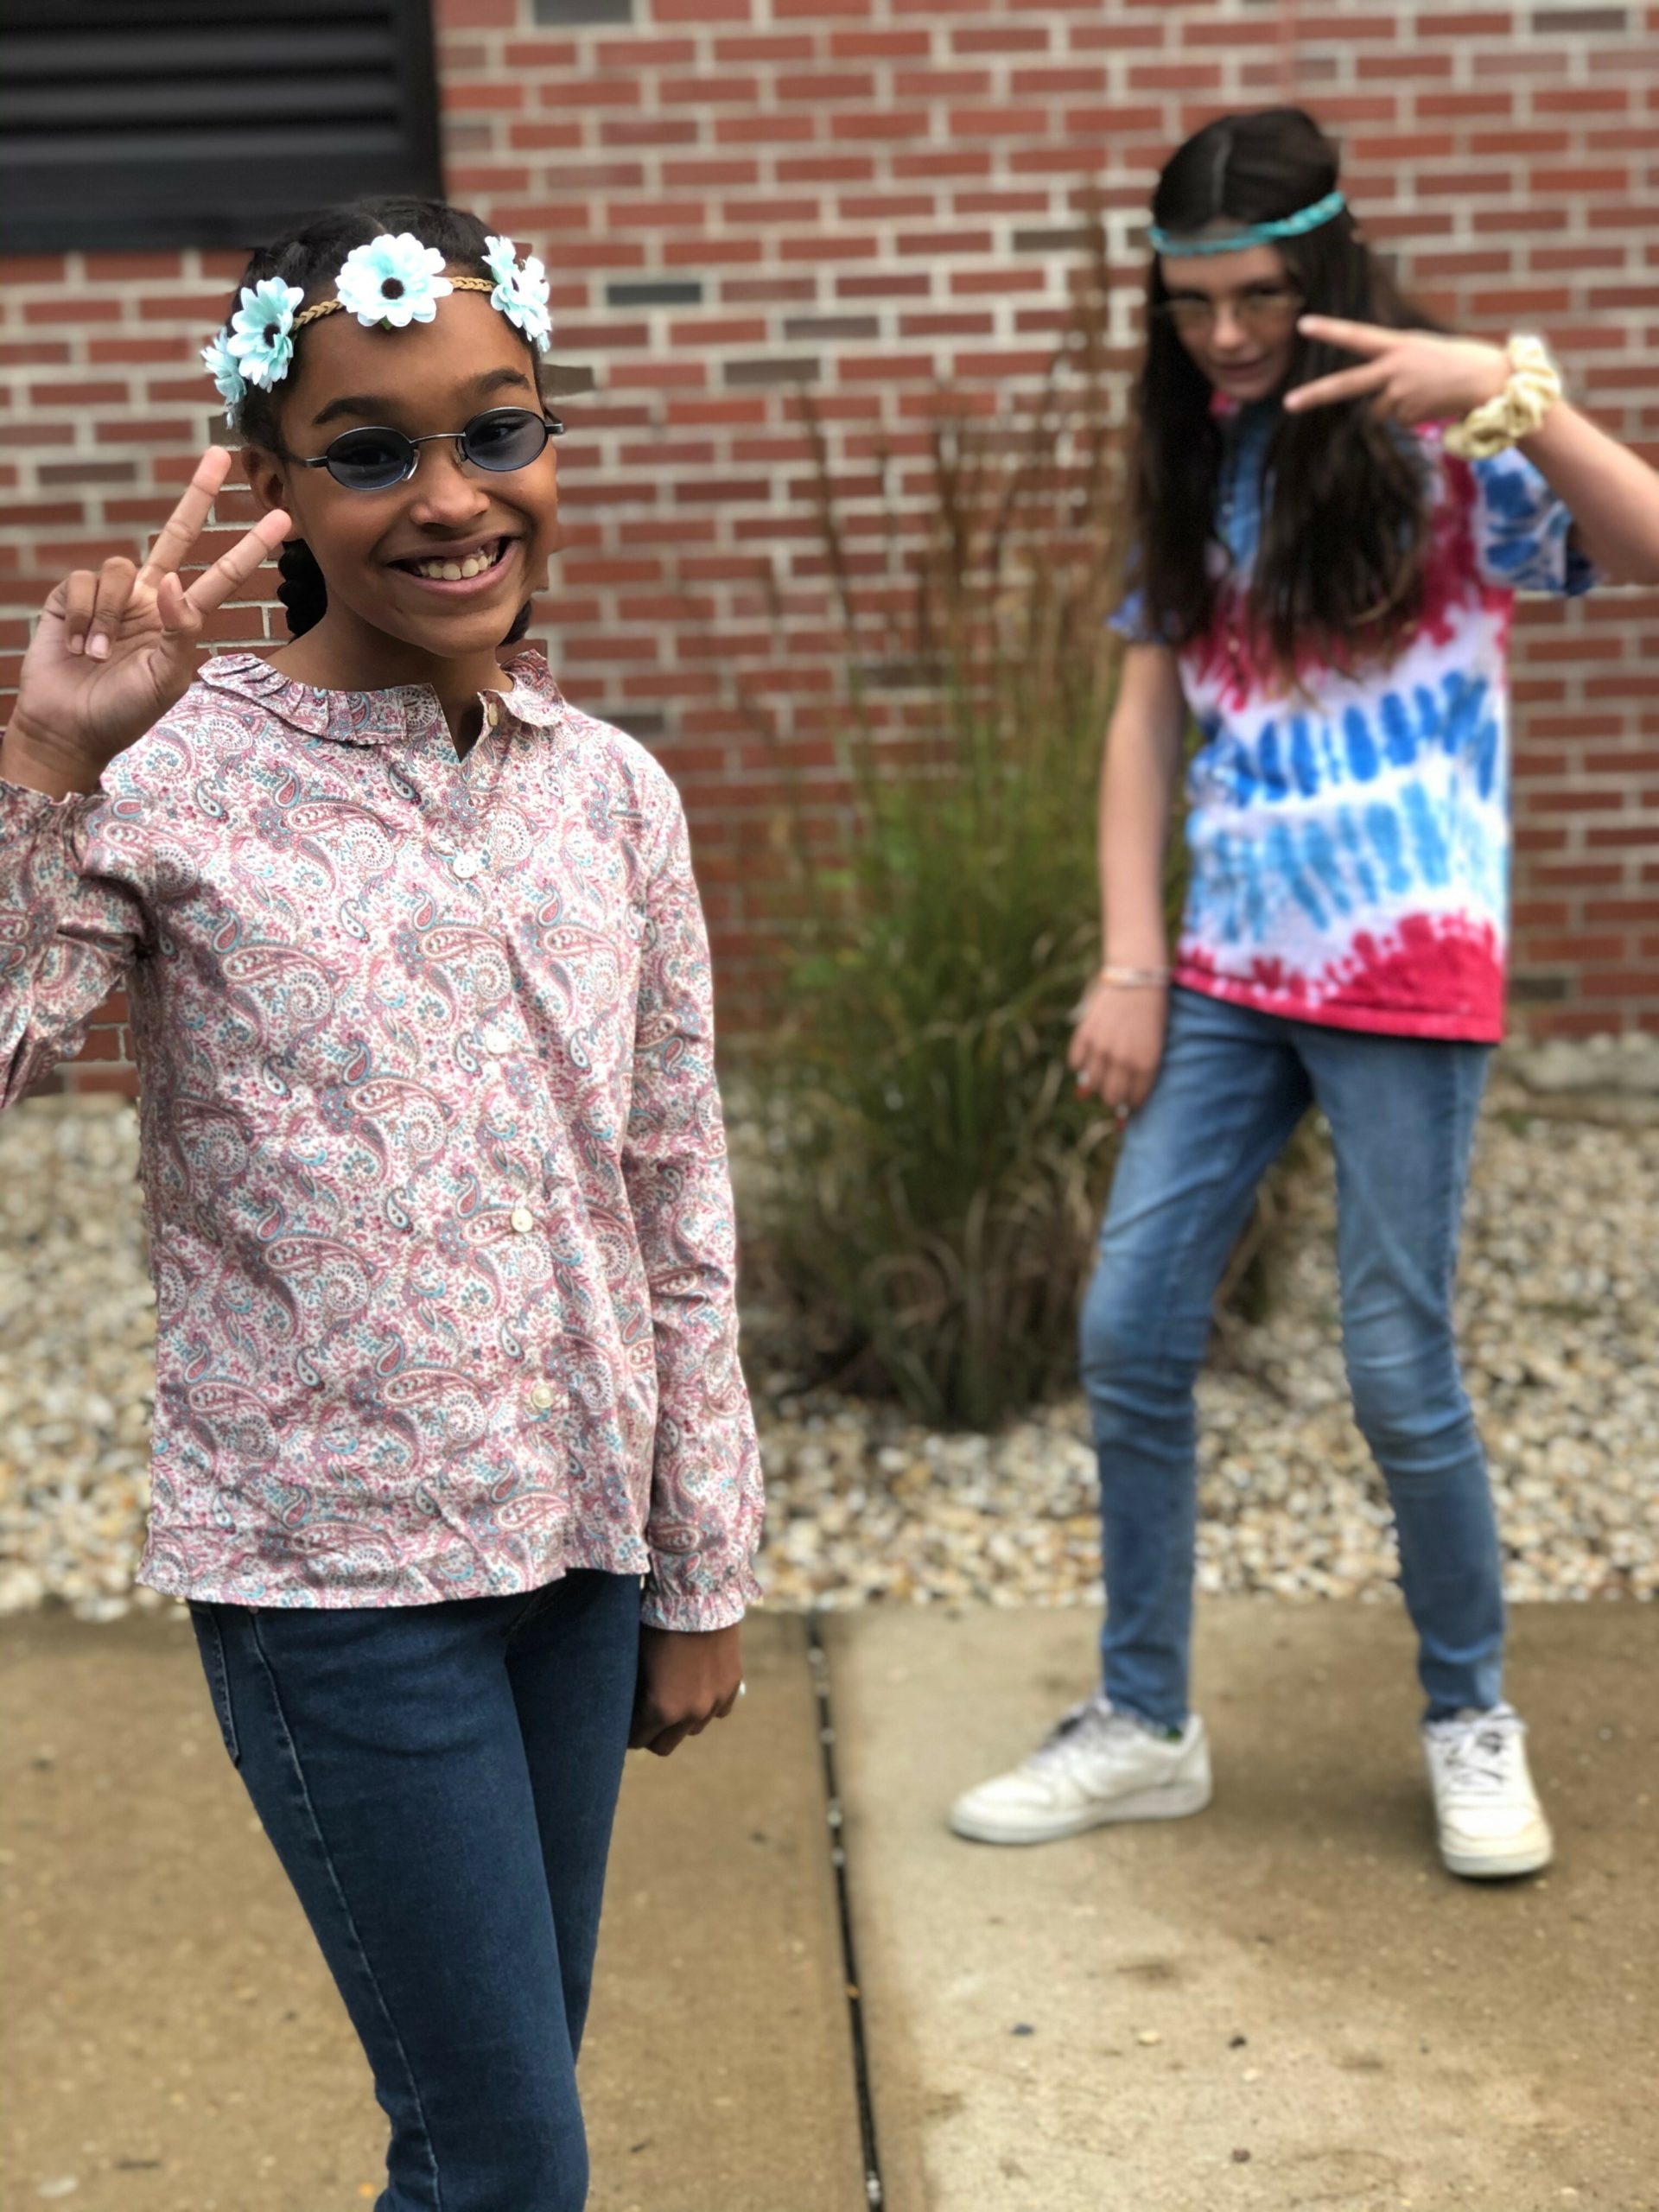 """Sixth graders Paige Francis and Wiley Reuss dressed in outfits from their favorite decade on """"Throwback Tuesday,"""" during Red Ribbon Week at Pierson Middle School."""